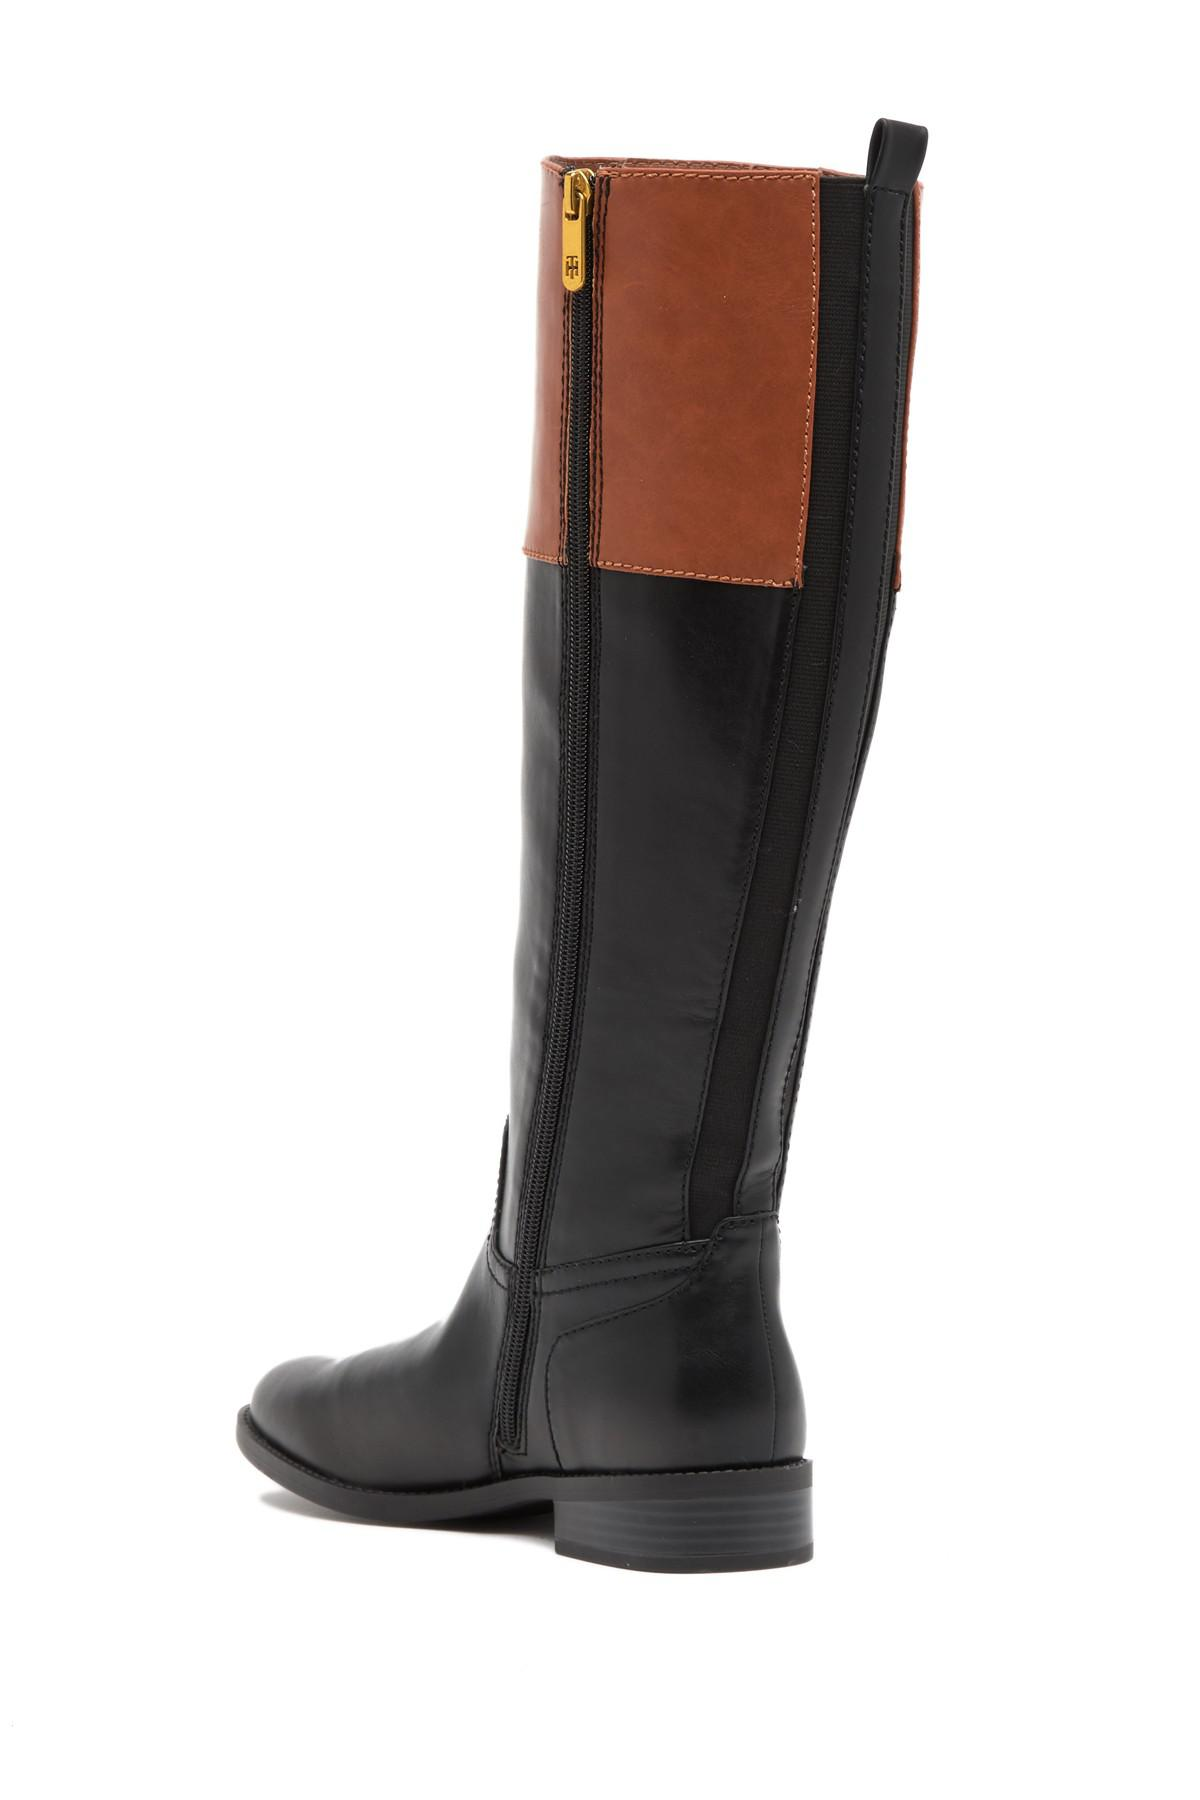 dd21ac952e8 Lyst - Tommy Hilfiger Noraa Riding Boot in Black